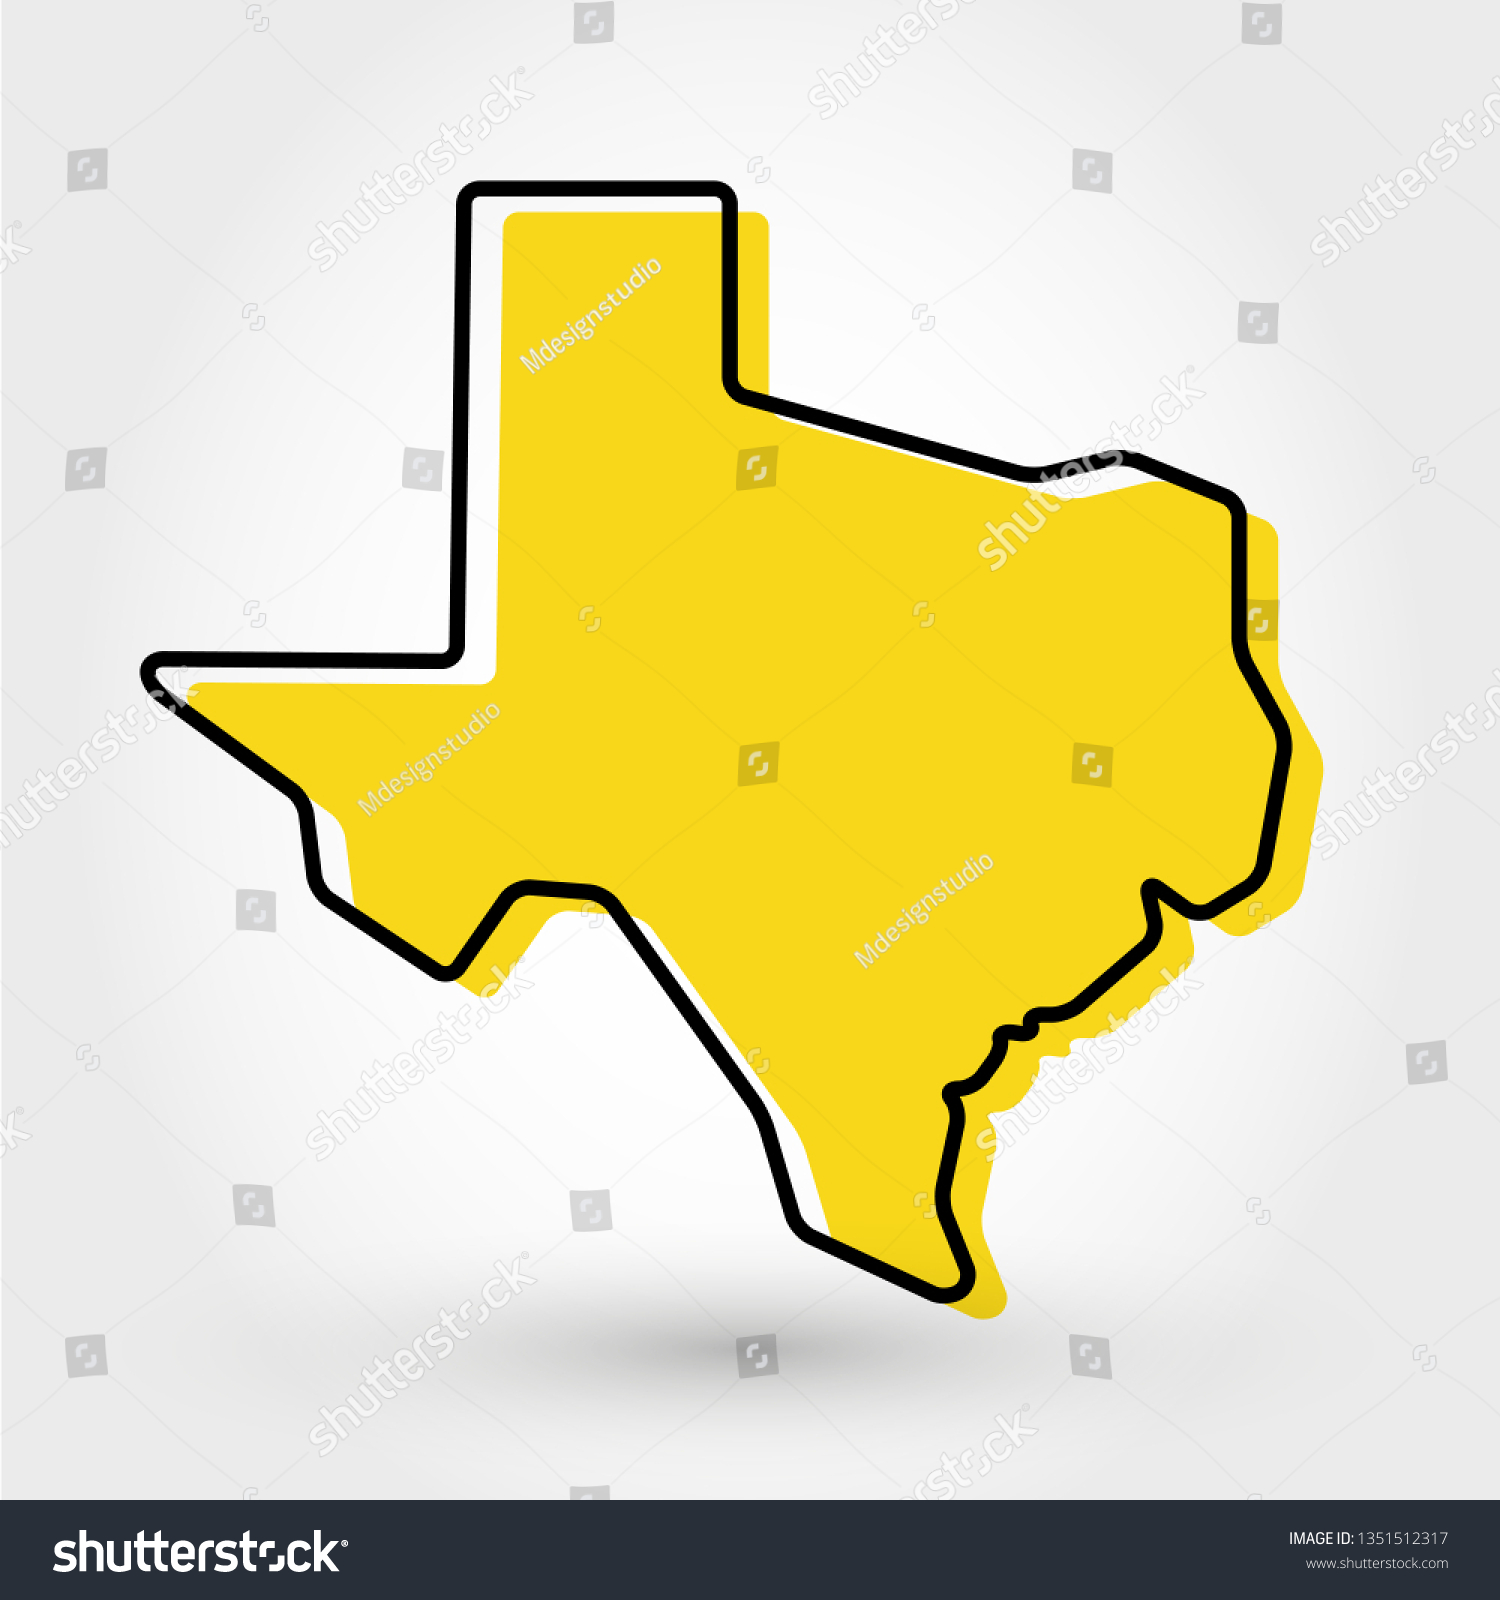 Yellow Outline Map Texas Stylized Concept Stock Vector